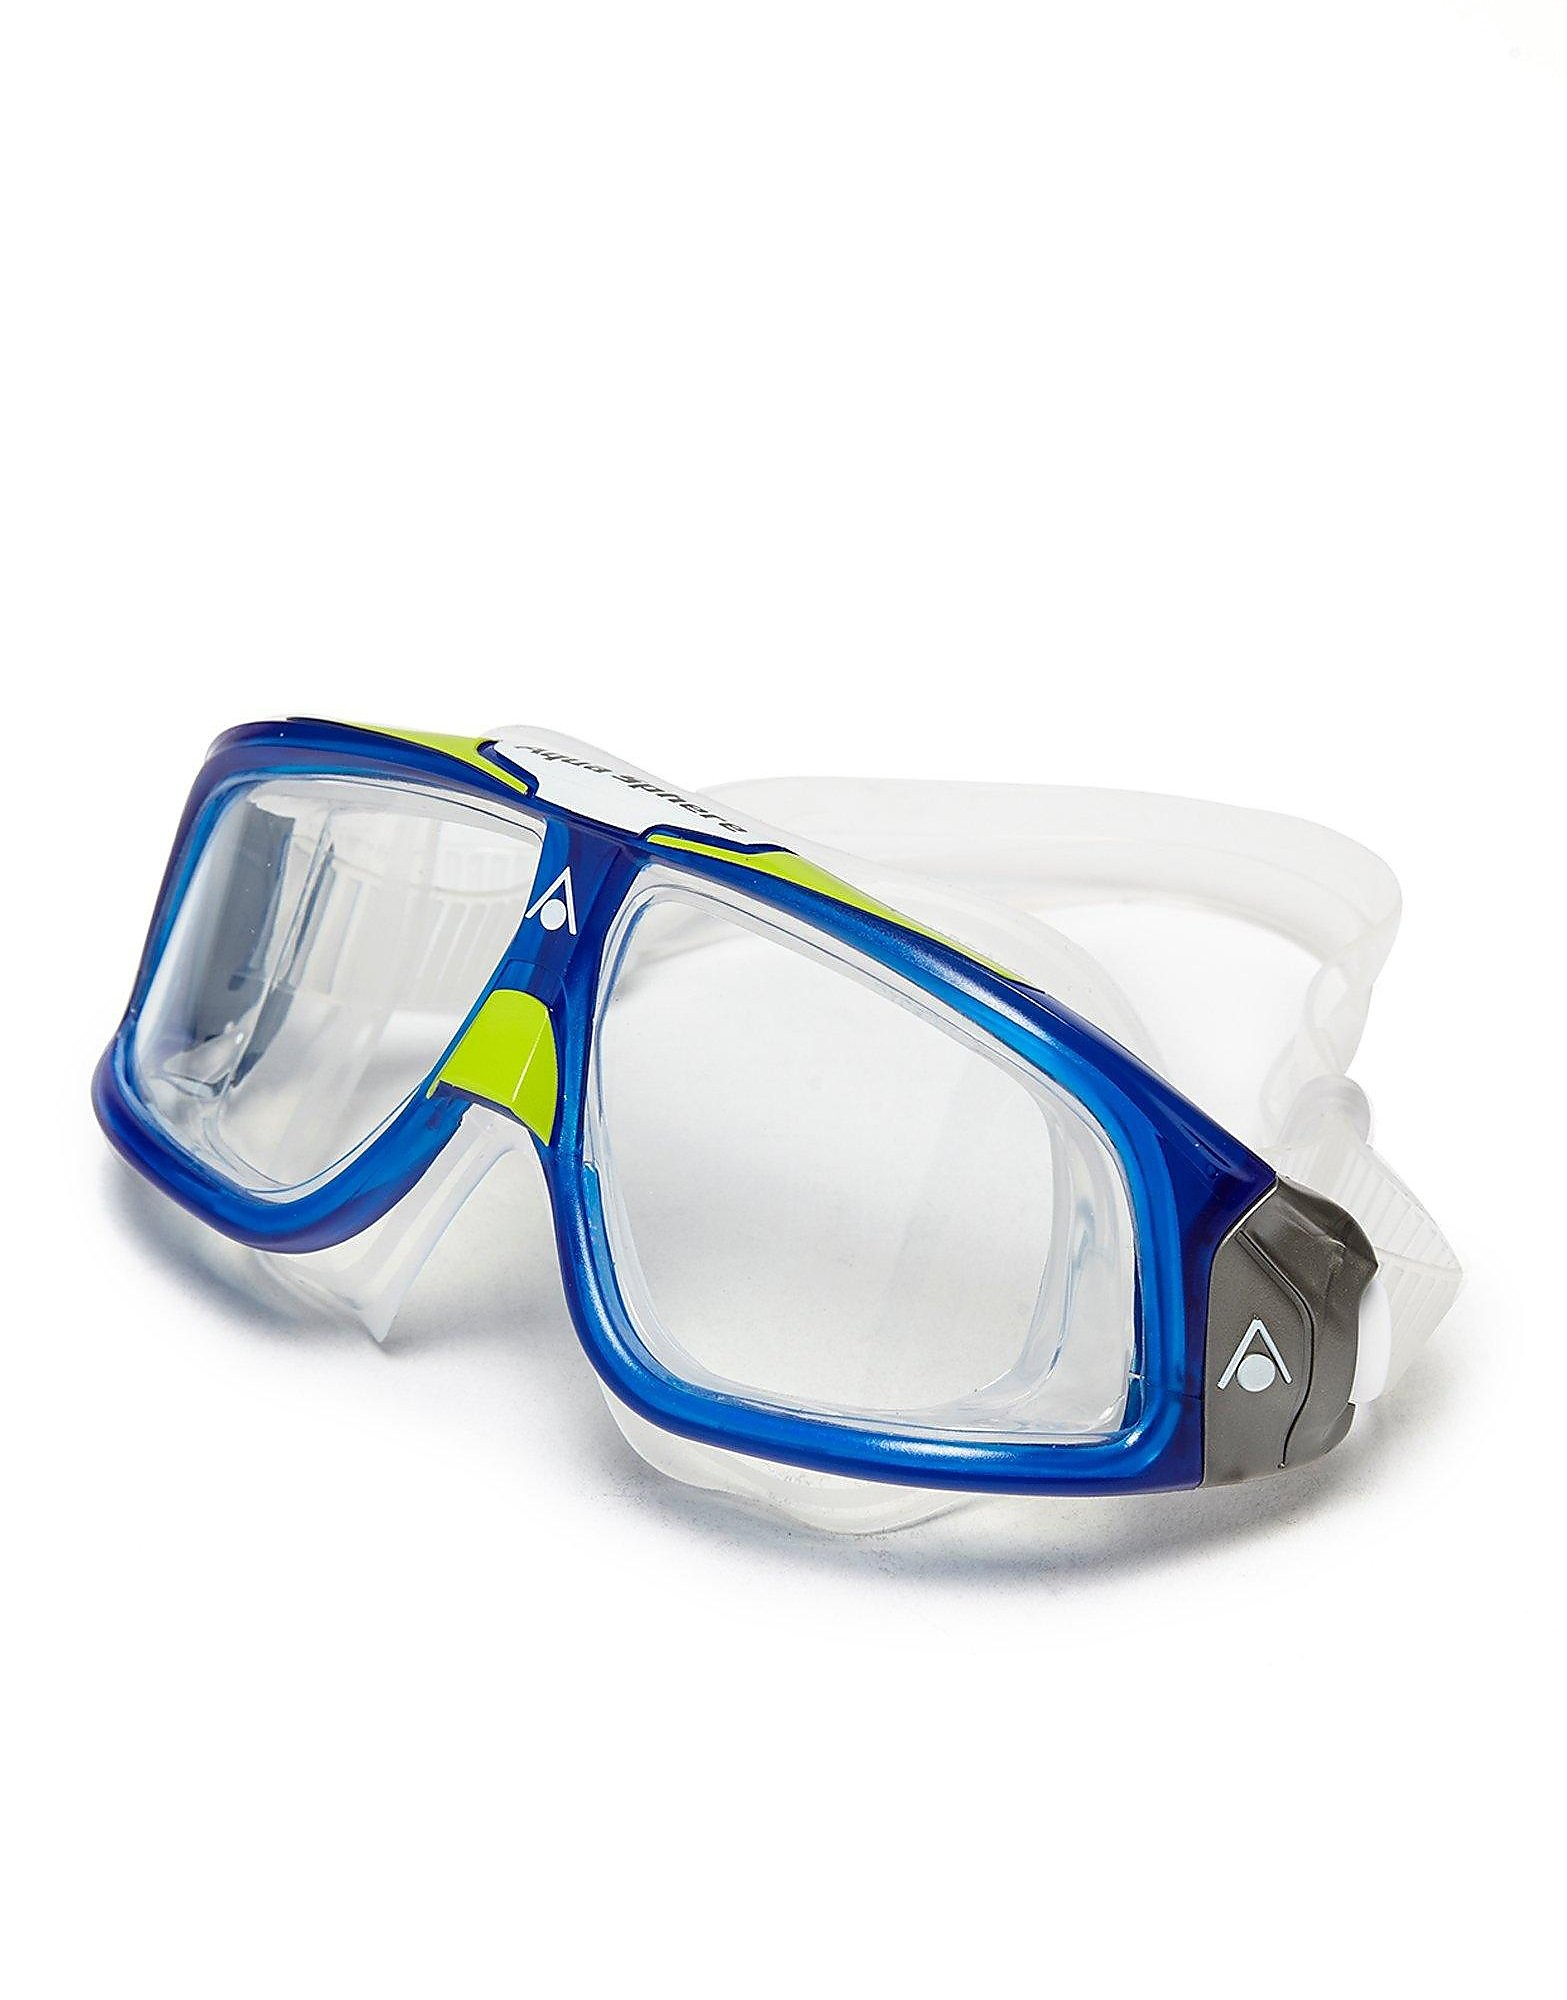 Aqua Sphere Seal 2.0 Mask